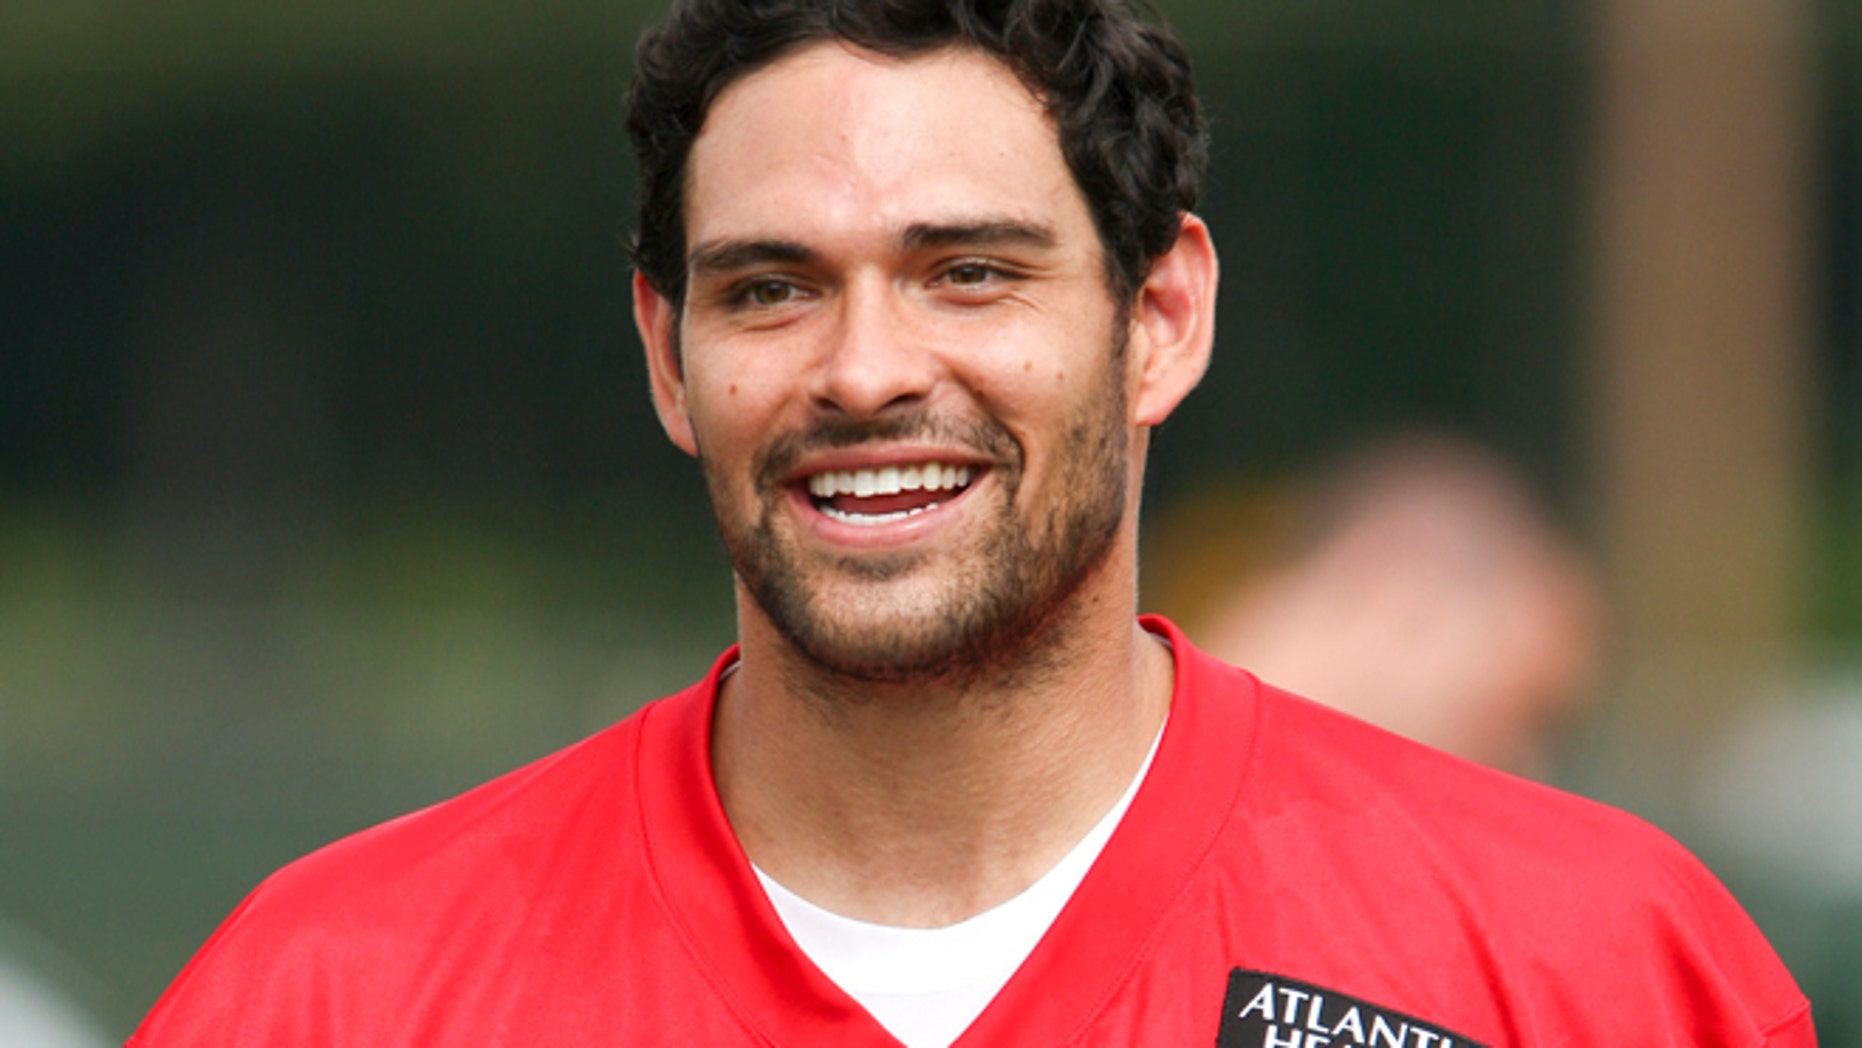 New York Jets quarterback Mark Sanchez smiles during Jets training camp practice in Cortland, New York, July 27, 2012.